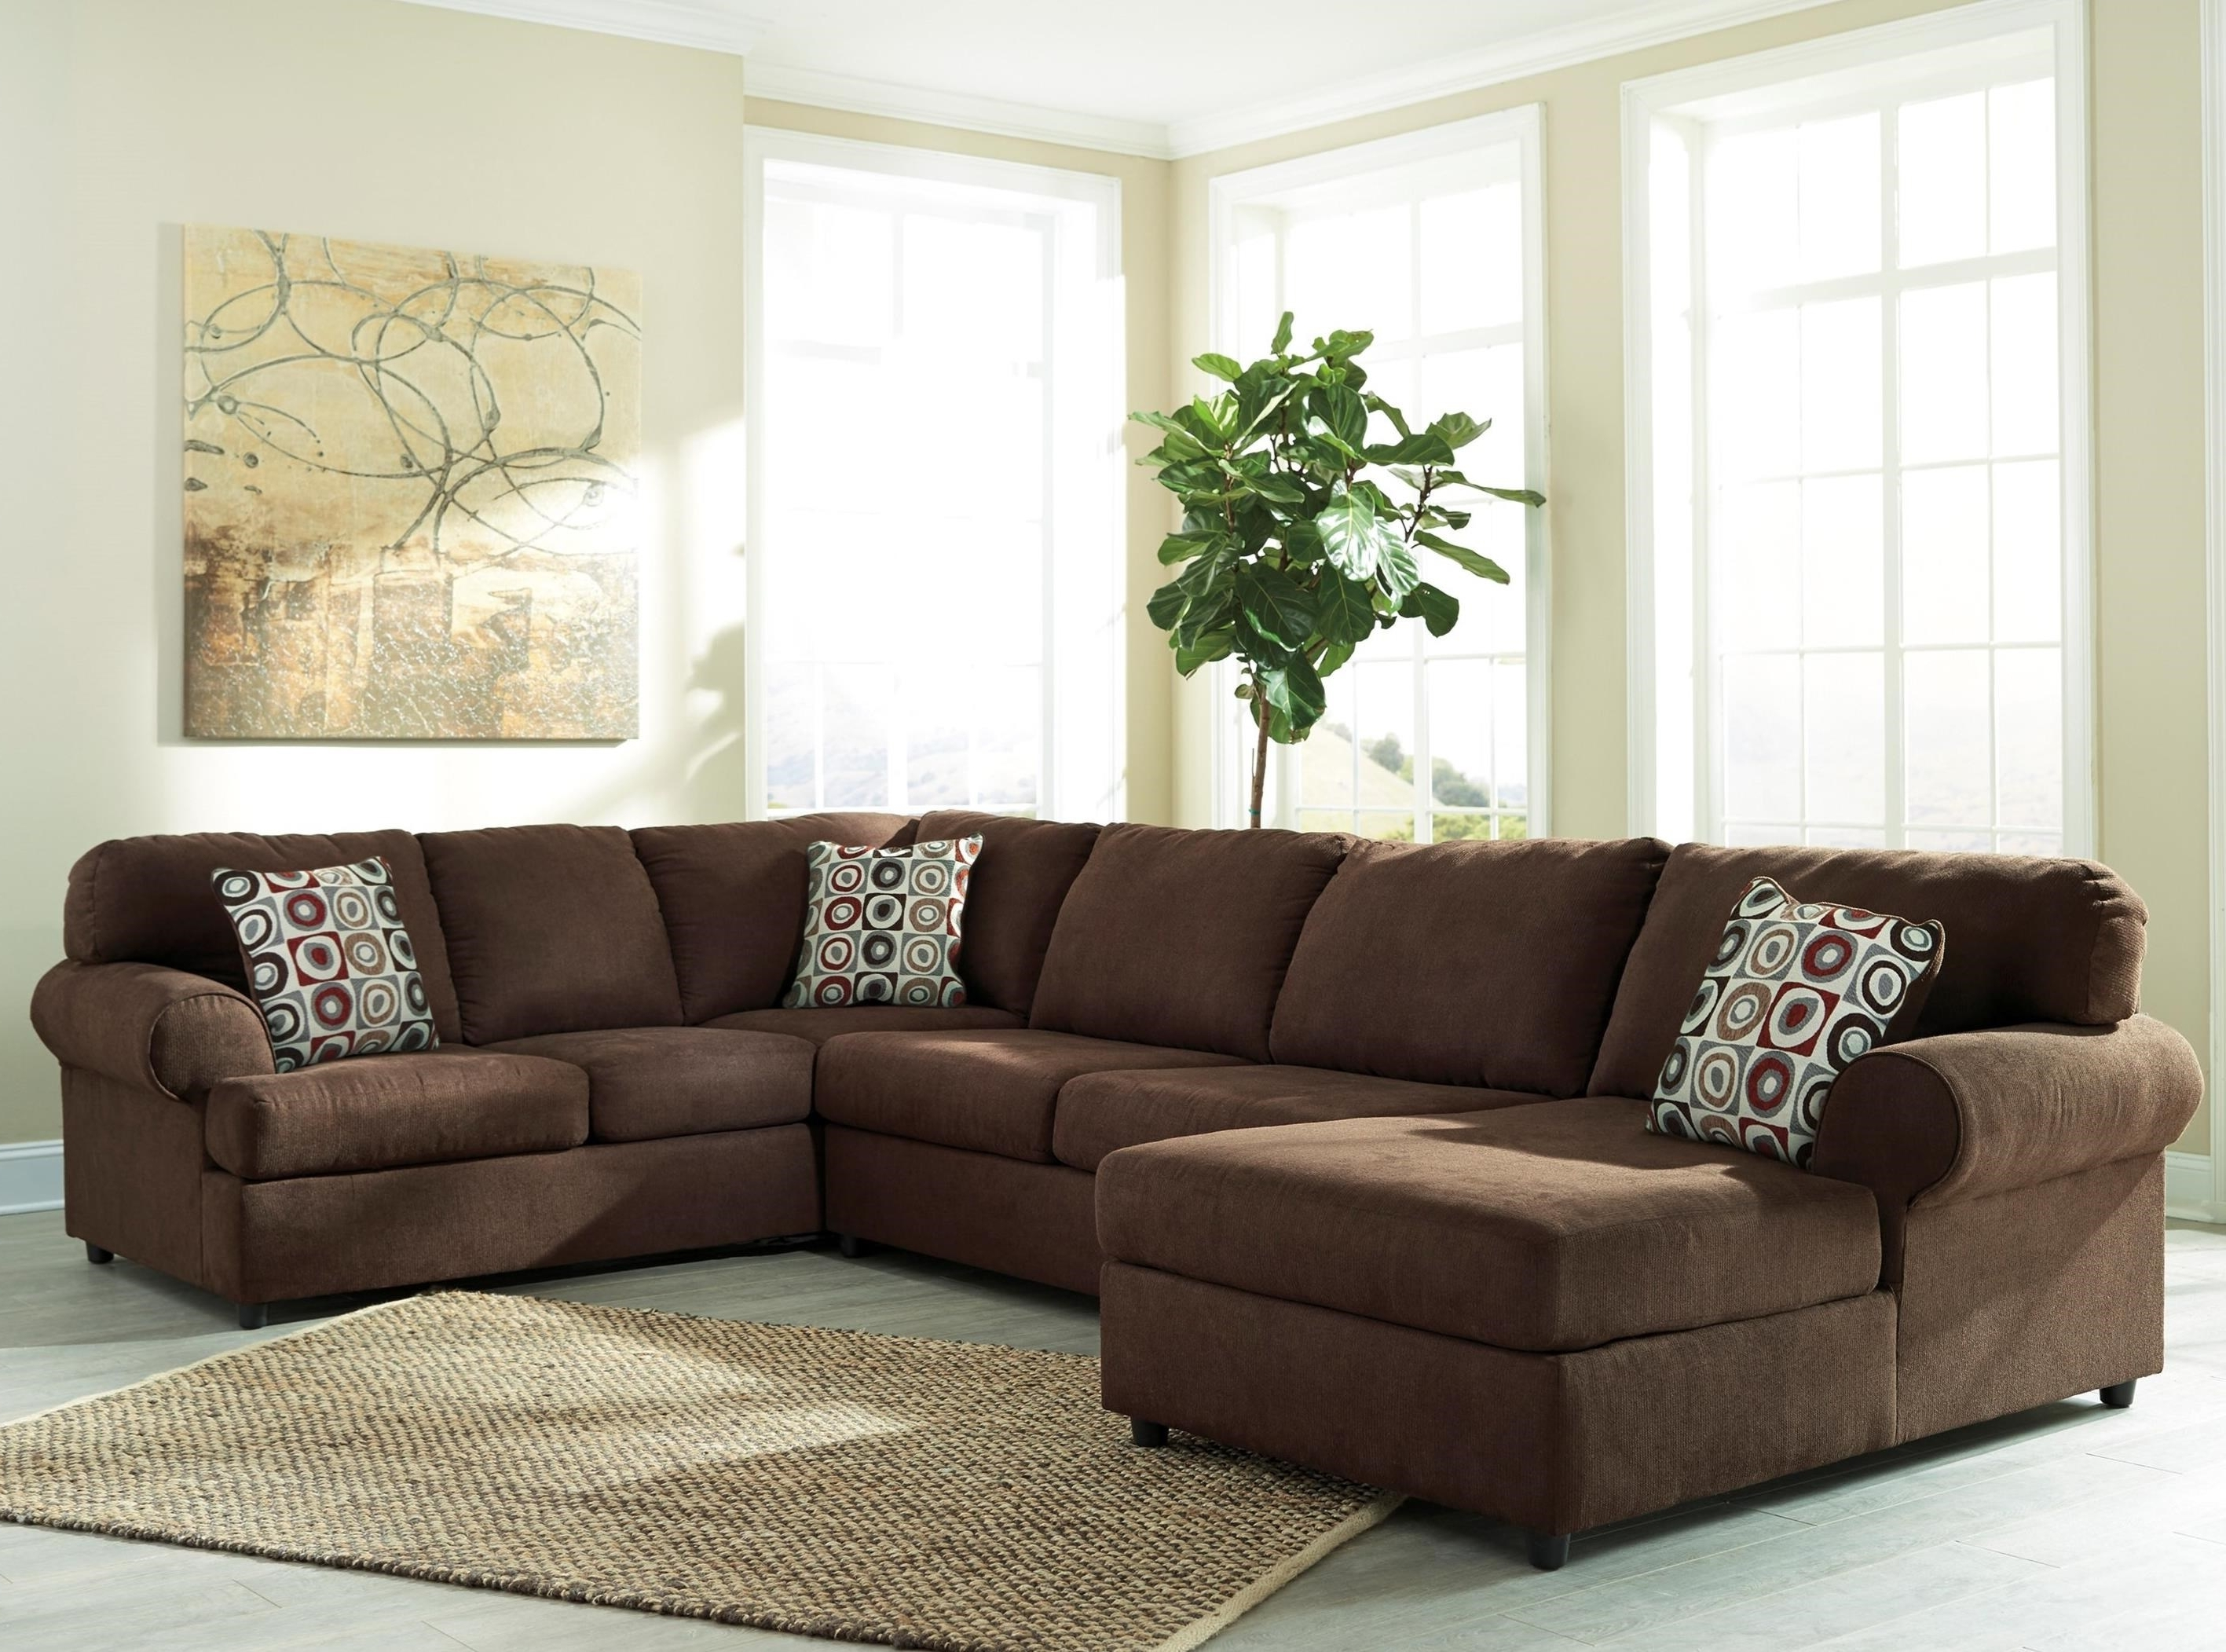 Well Liked Signature Designashley Jayceon 3 Piece Sectional With Left Inside 3 Piece Sectional Sofas With Chaise (View 15 of 15)